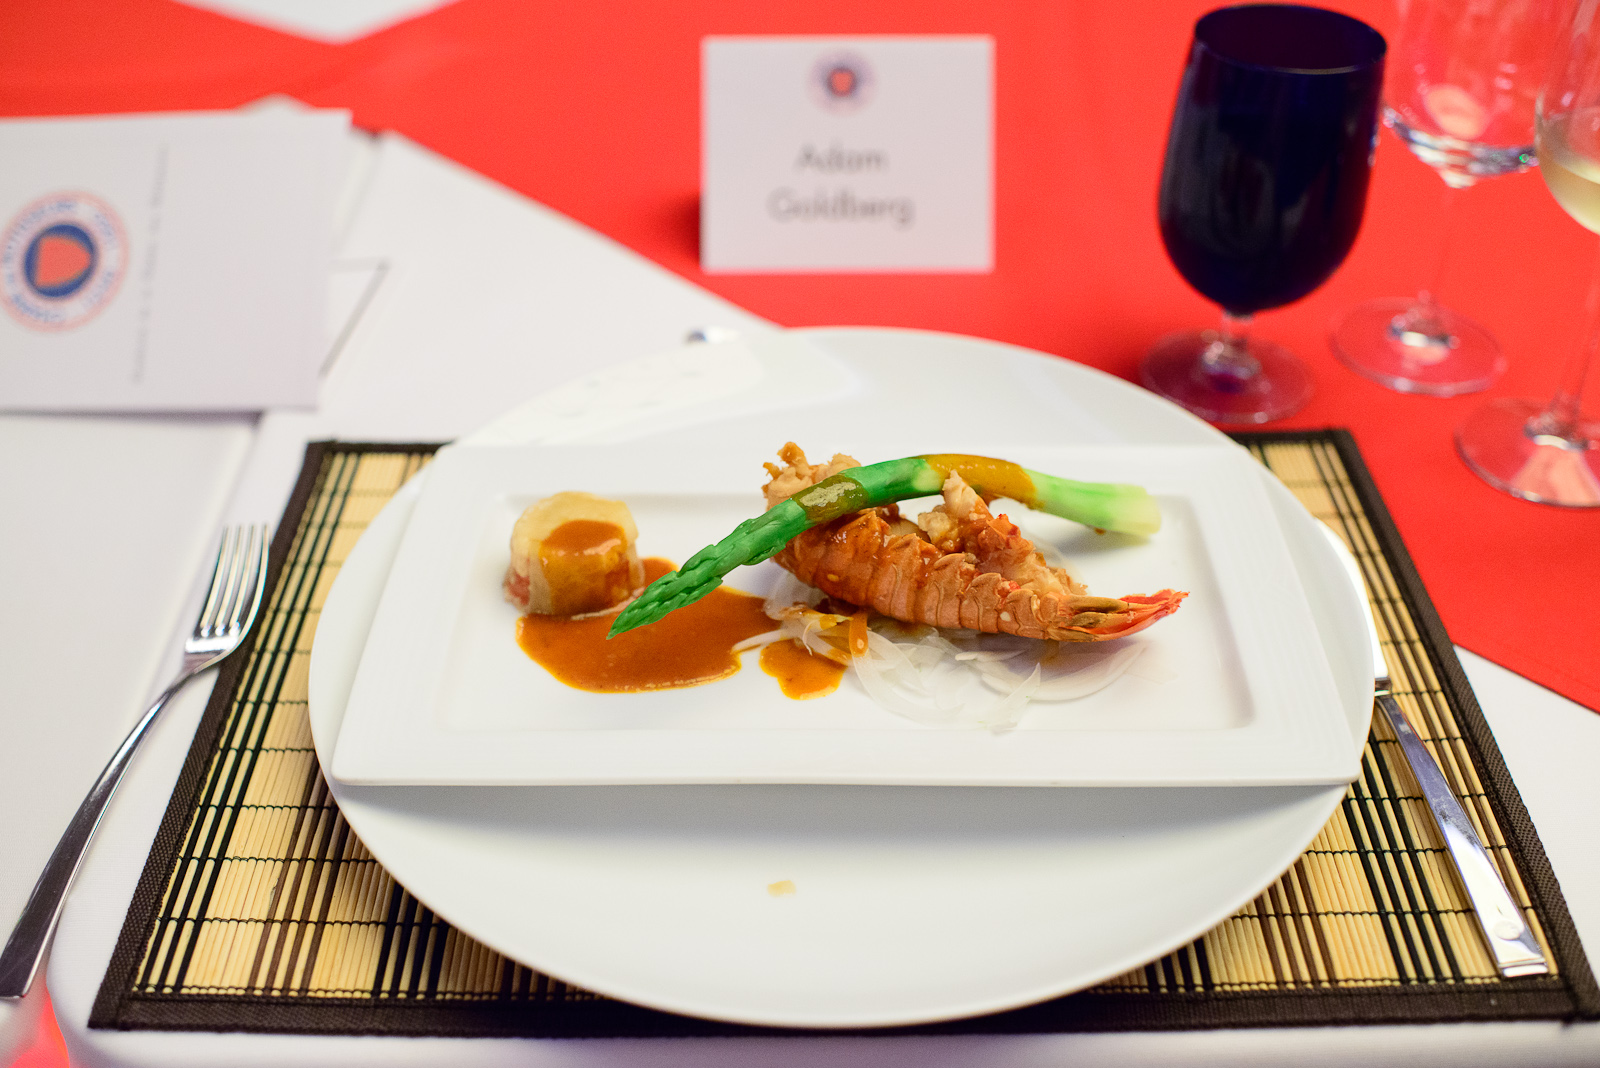 4th Course: Langosta & Nasu - Lobster served with tom yom salsa